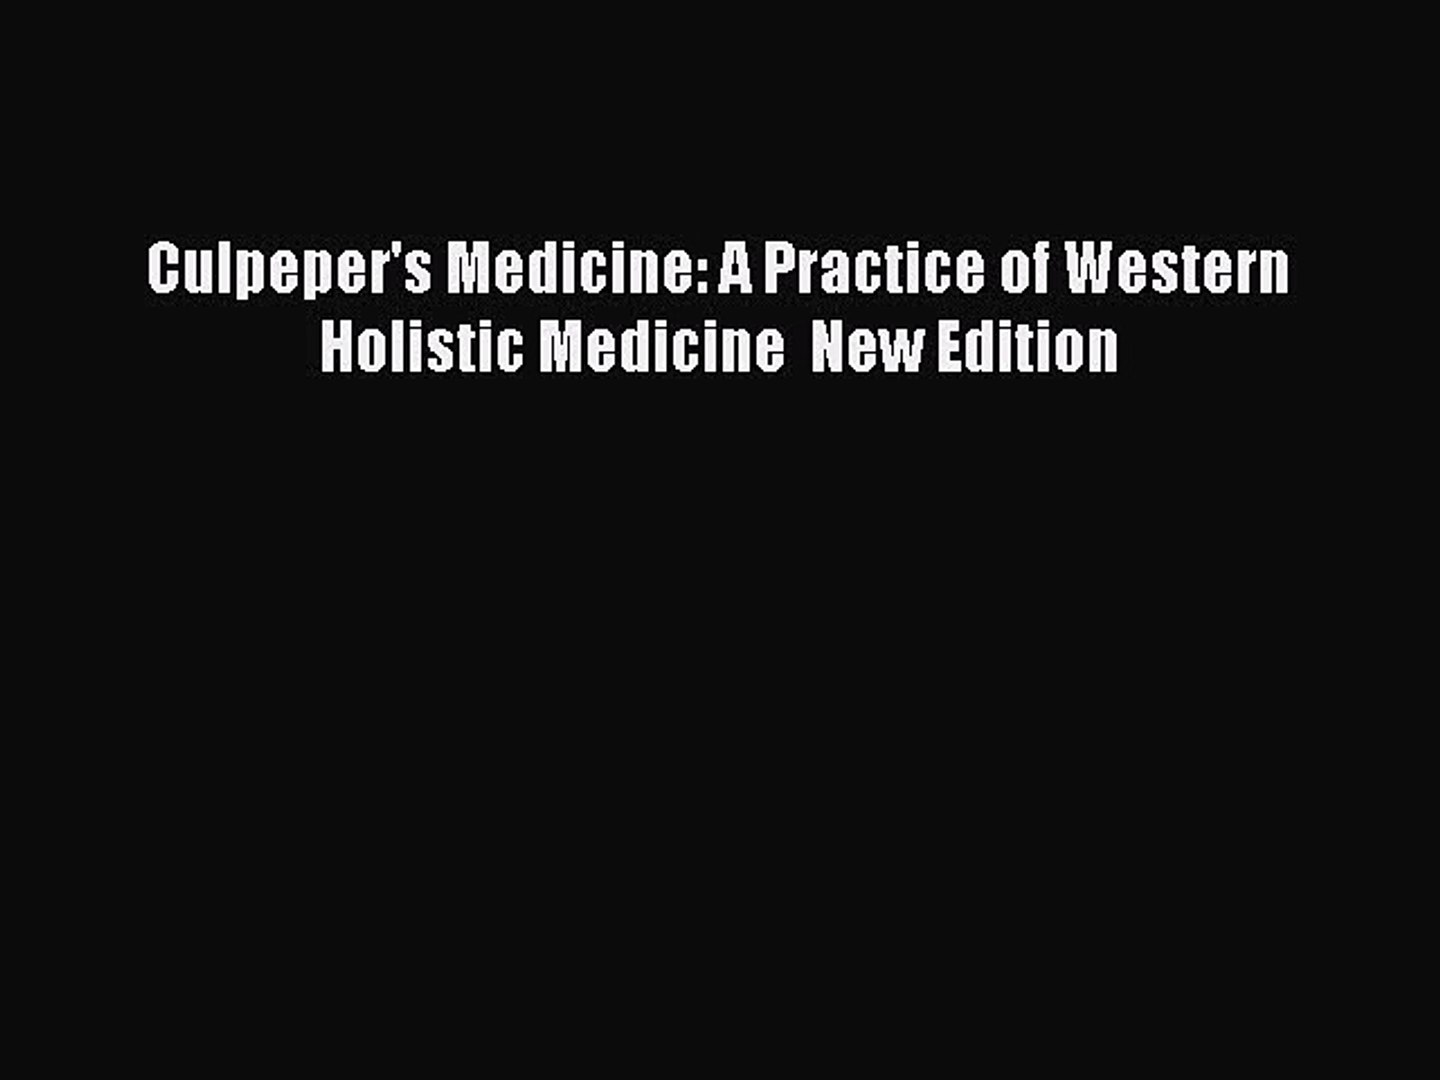 Culpepers Medicine: A Practice of Western Holistic Medicine  New Edition